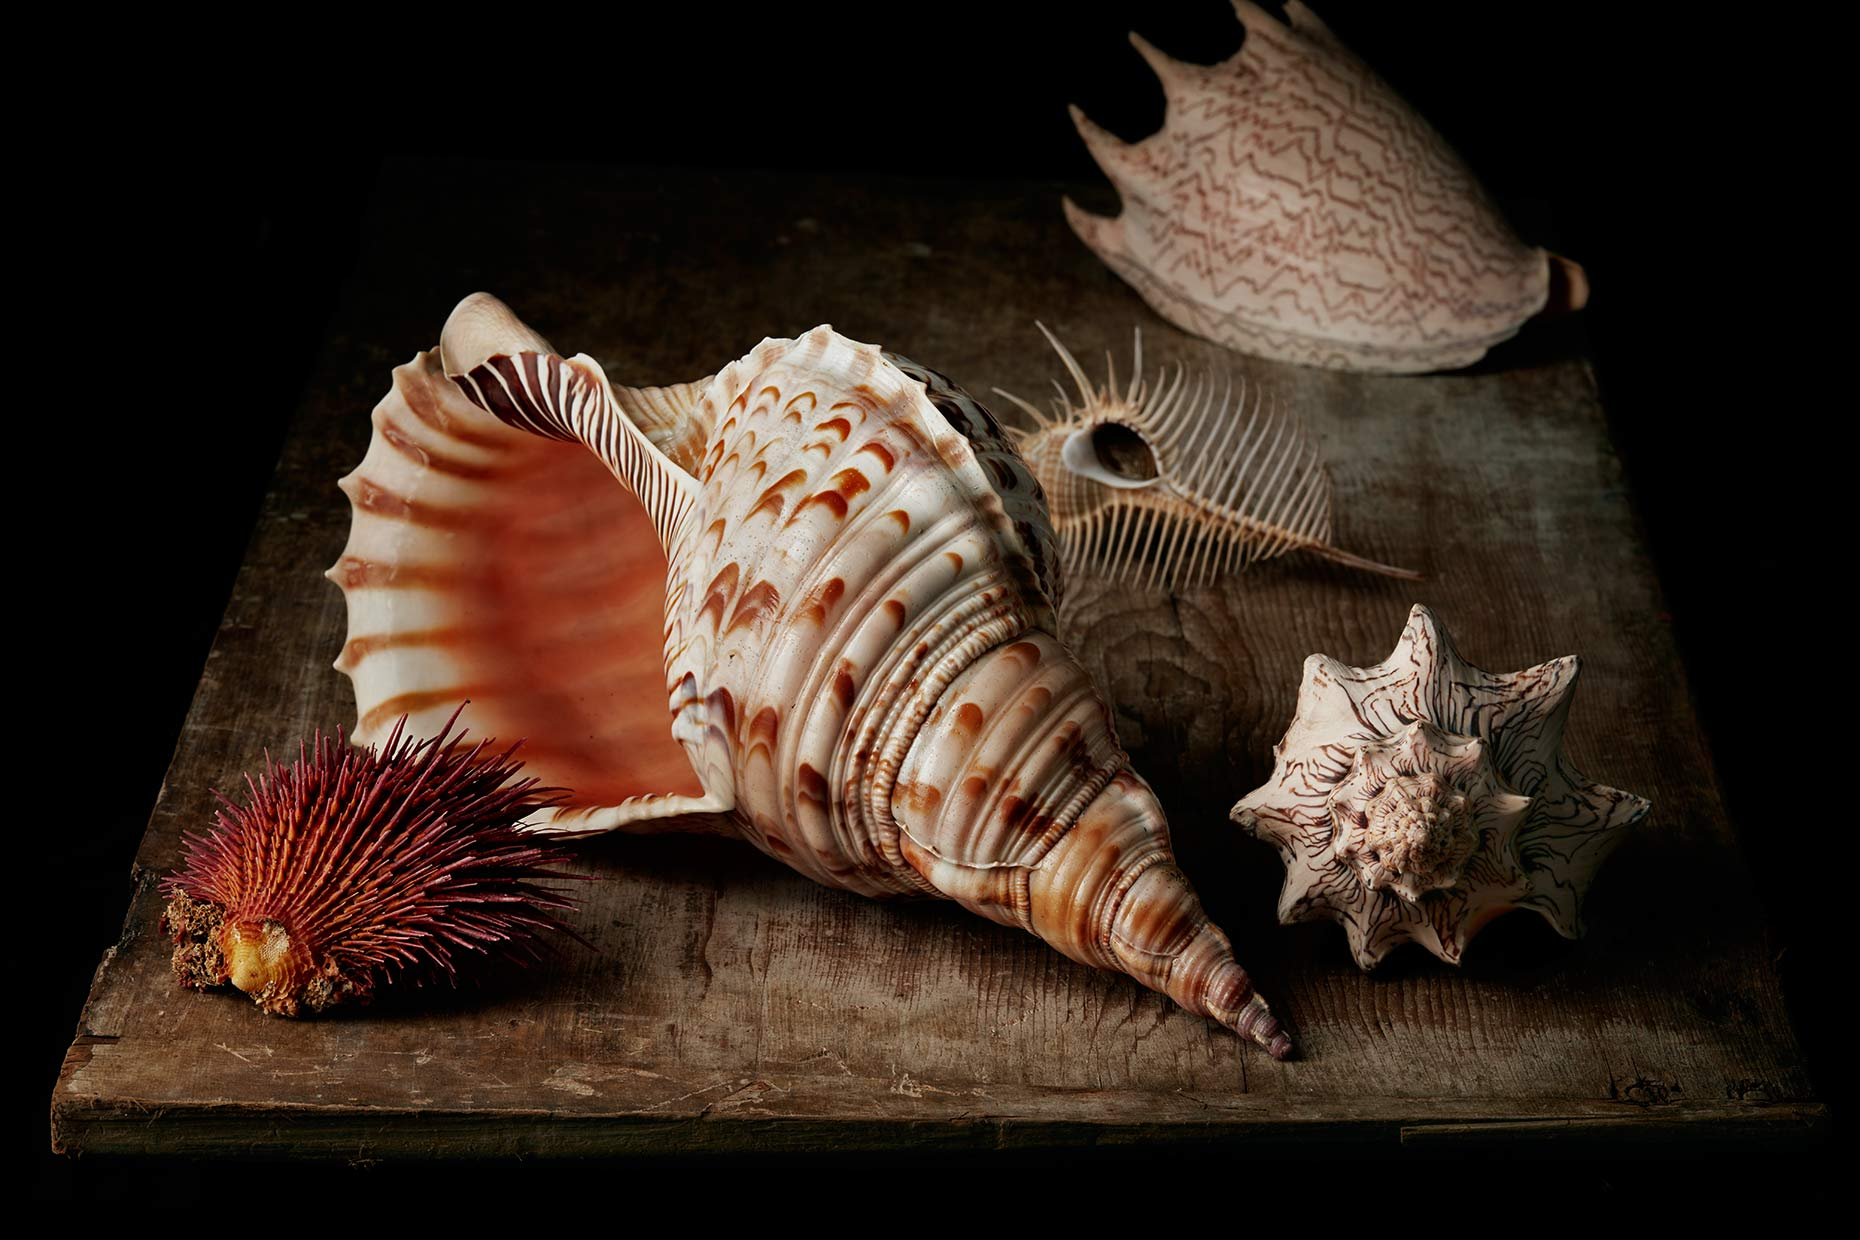 Still life photo of various seashells on wooden board.